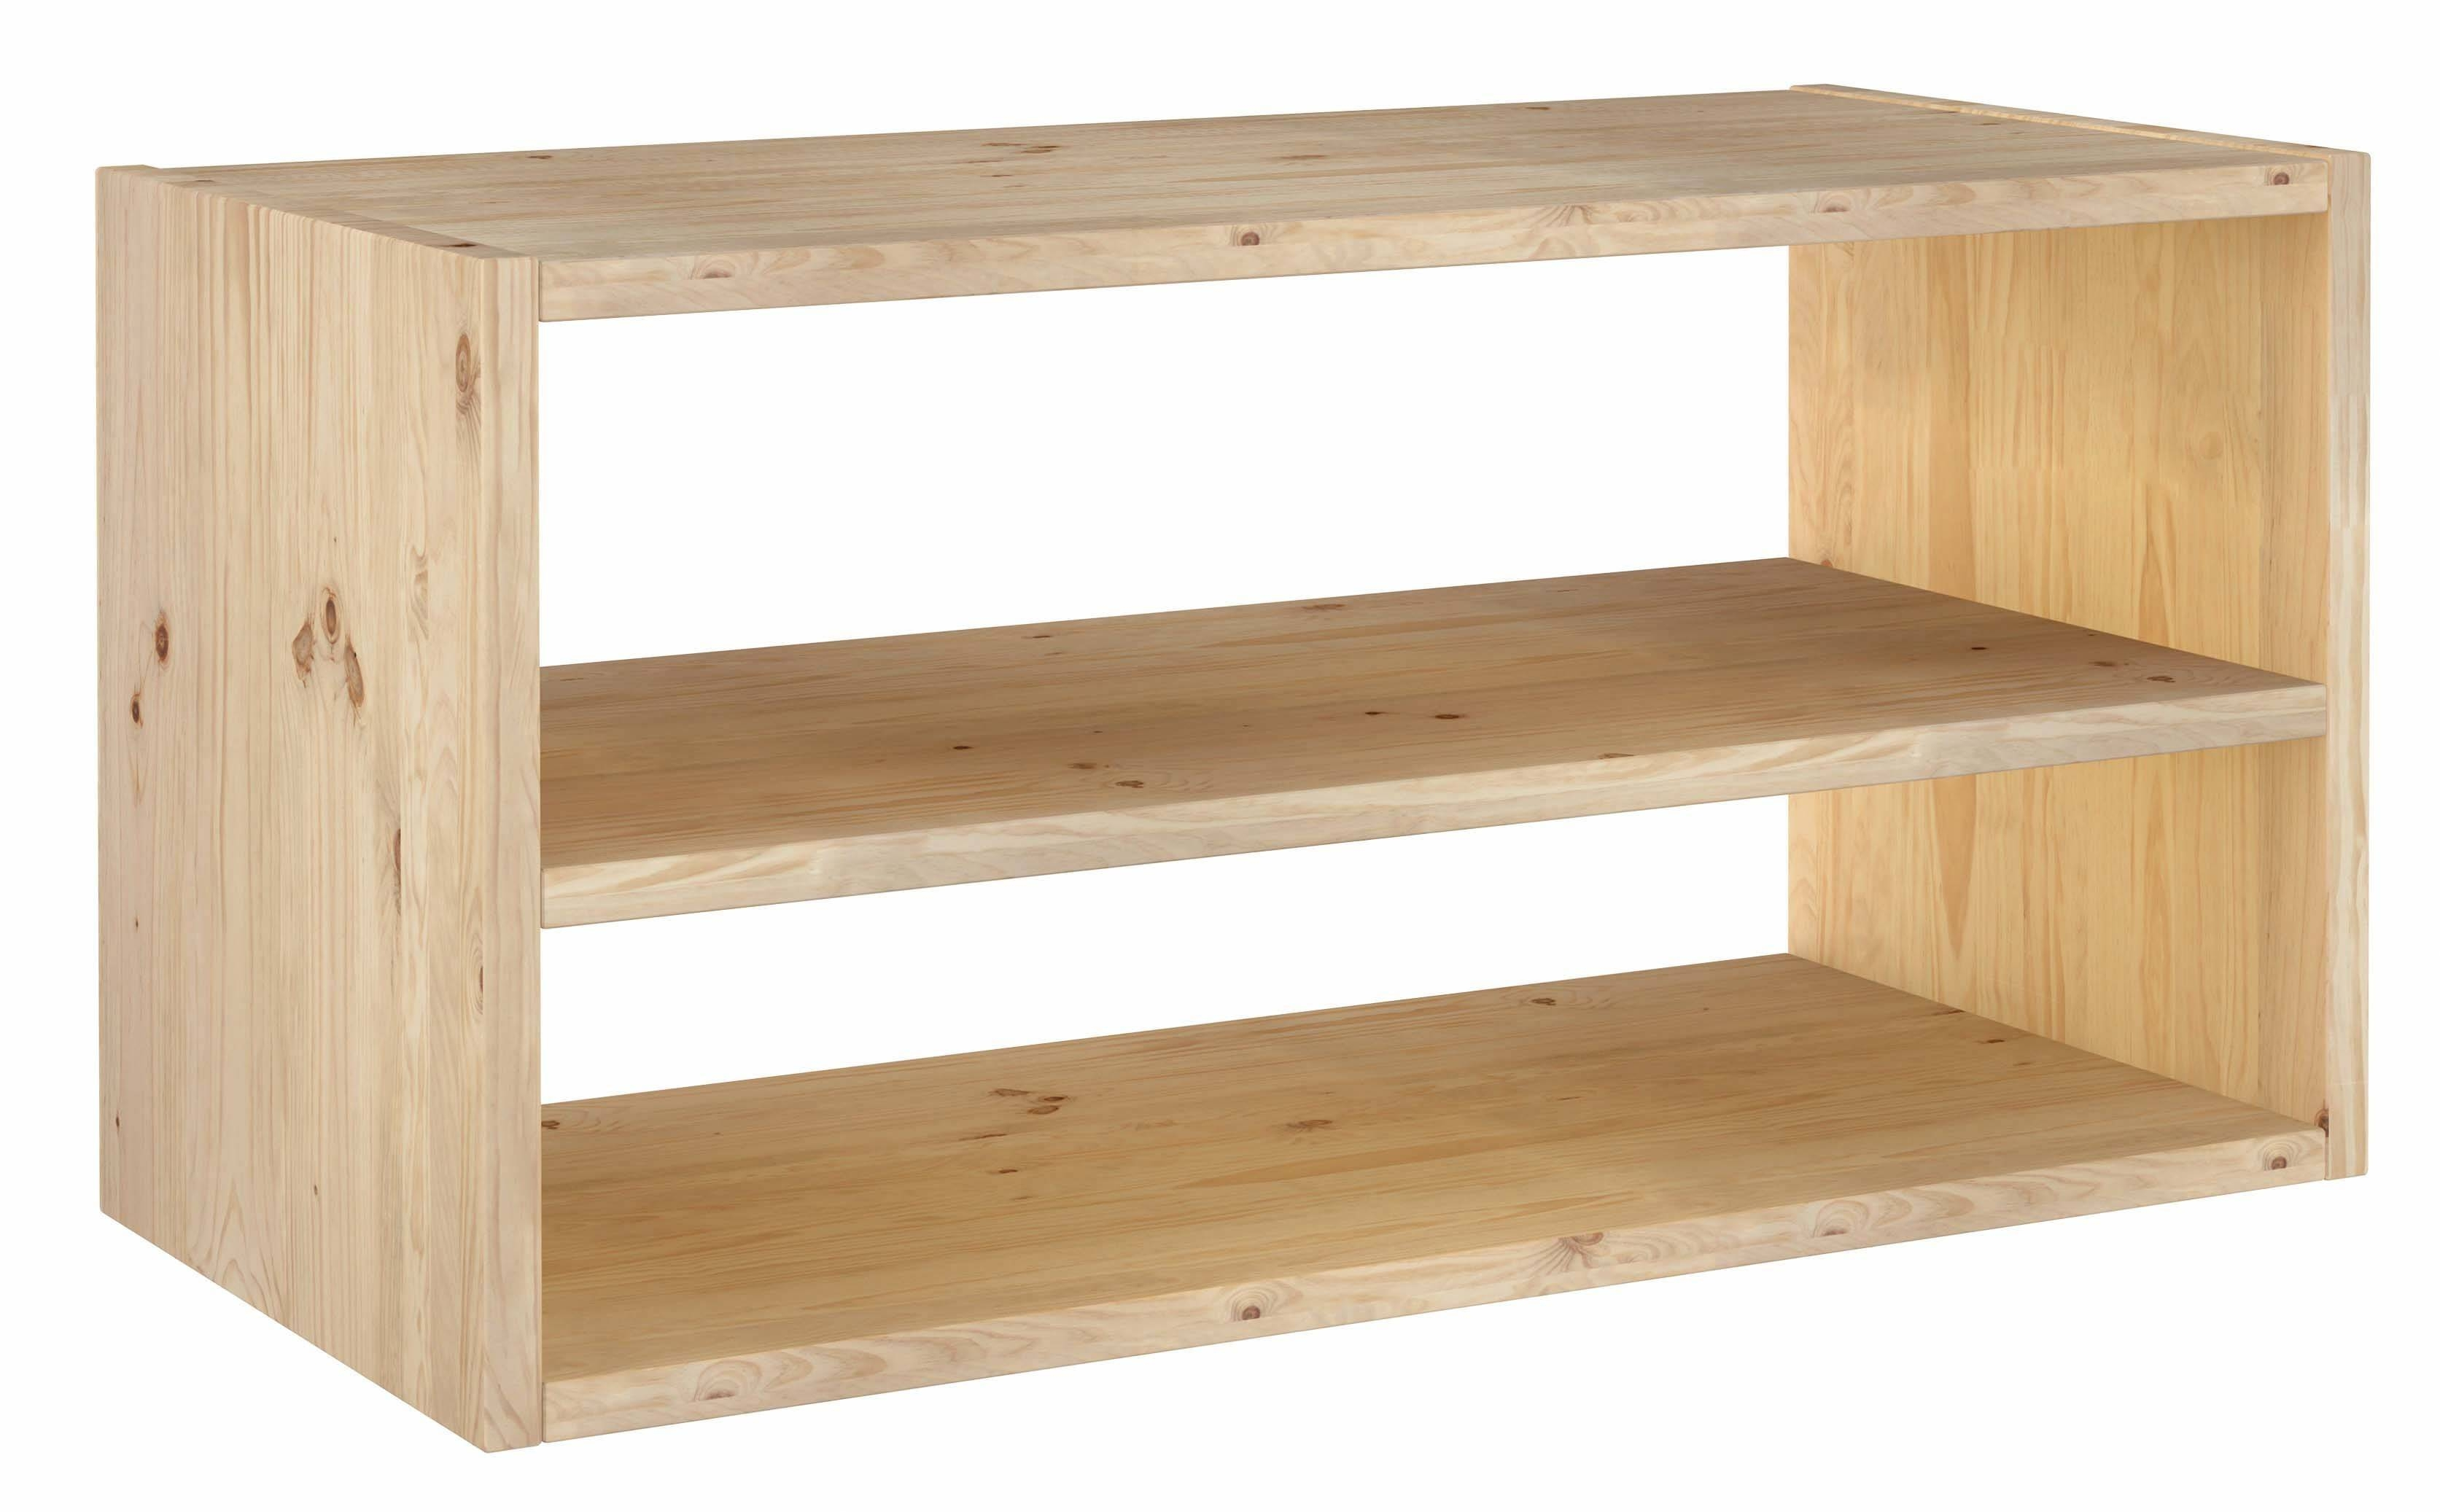 Europe & Nature : Shelf In Massive Wood Pine - Dinamic 2X1 - Tv Stand with regard to Pine Wood Tv Stands (Image 7 of 15)